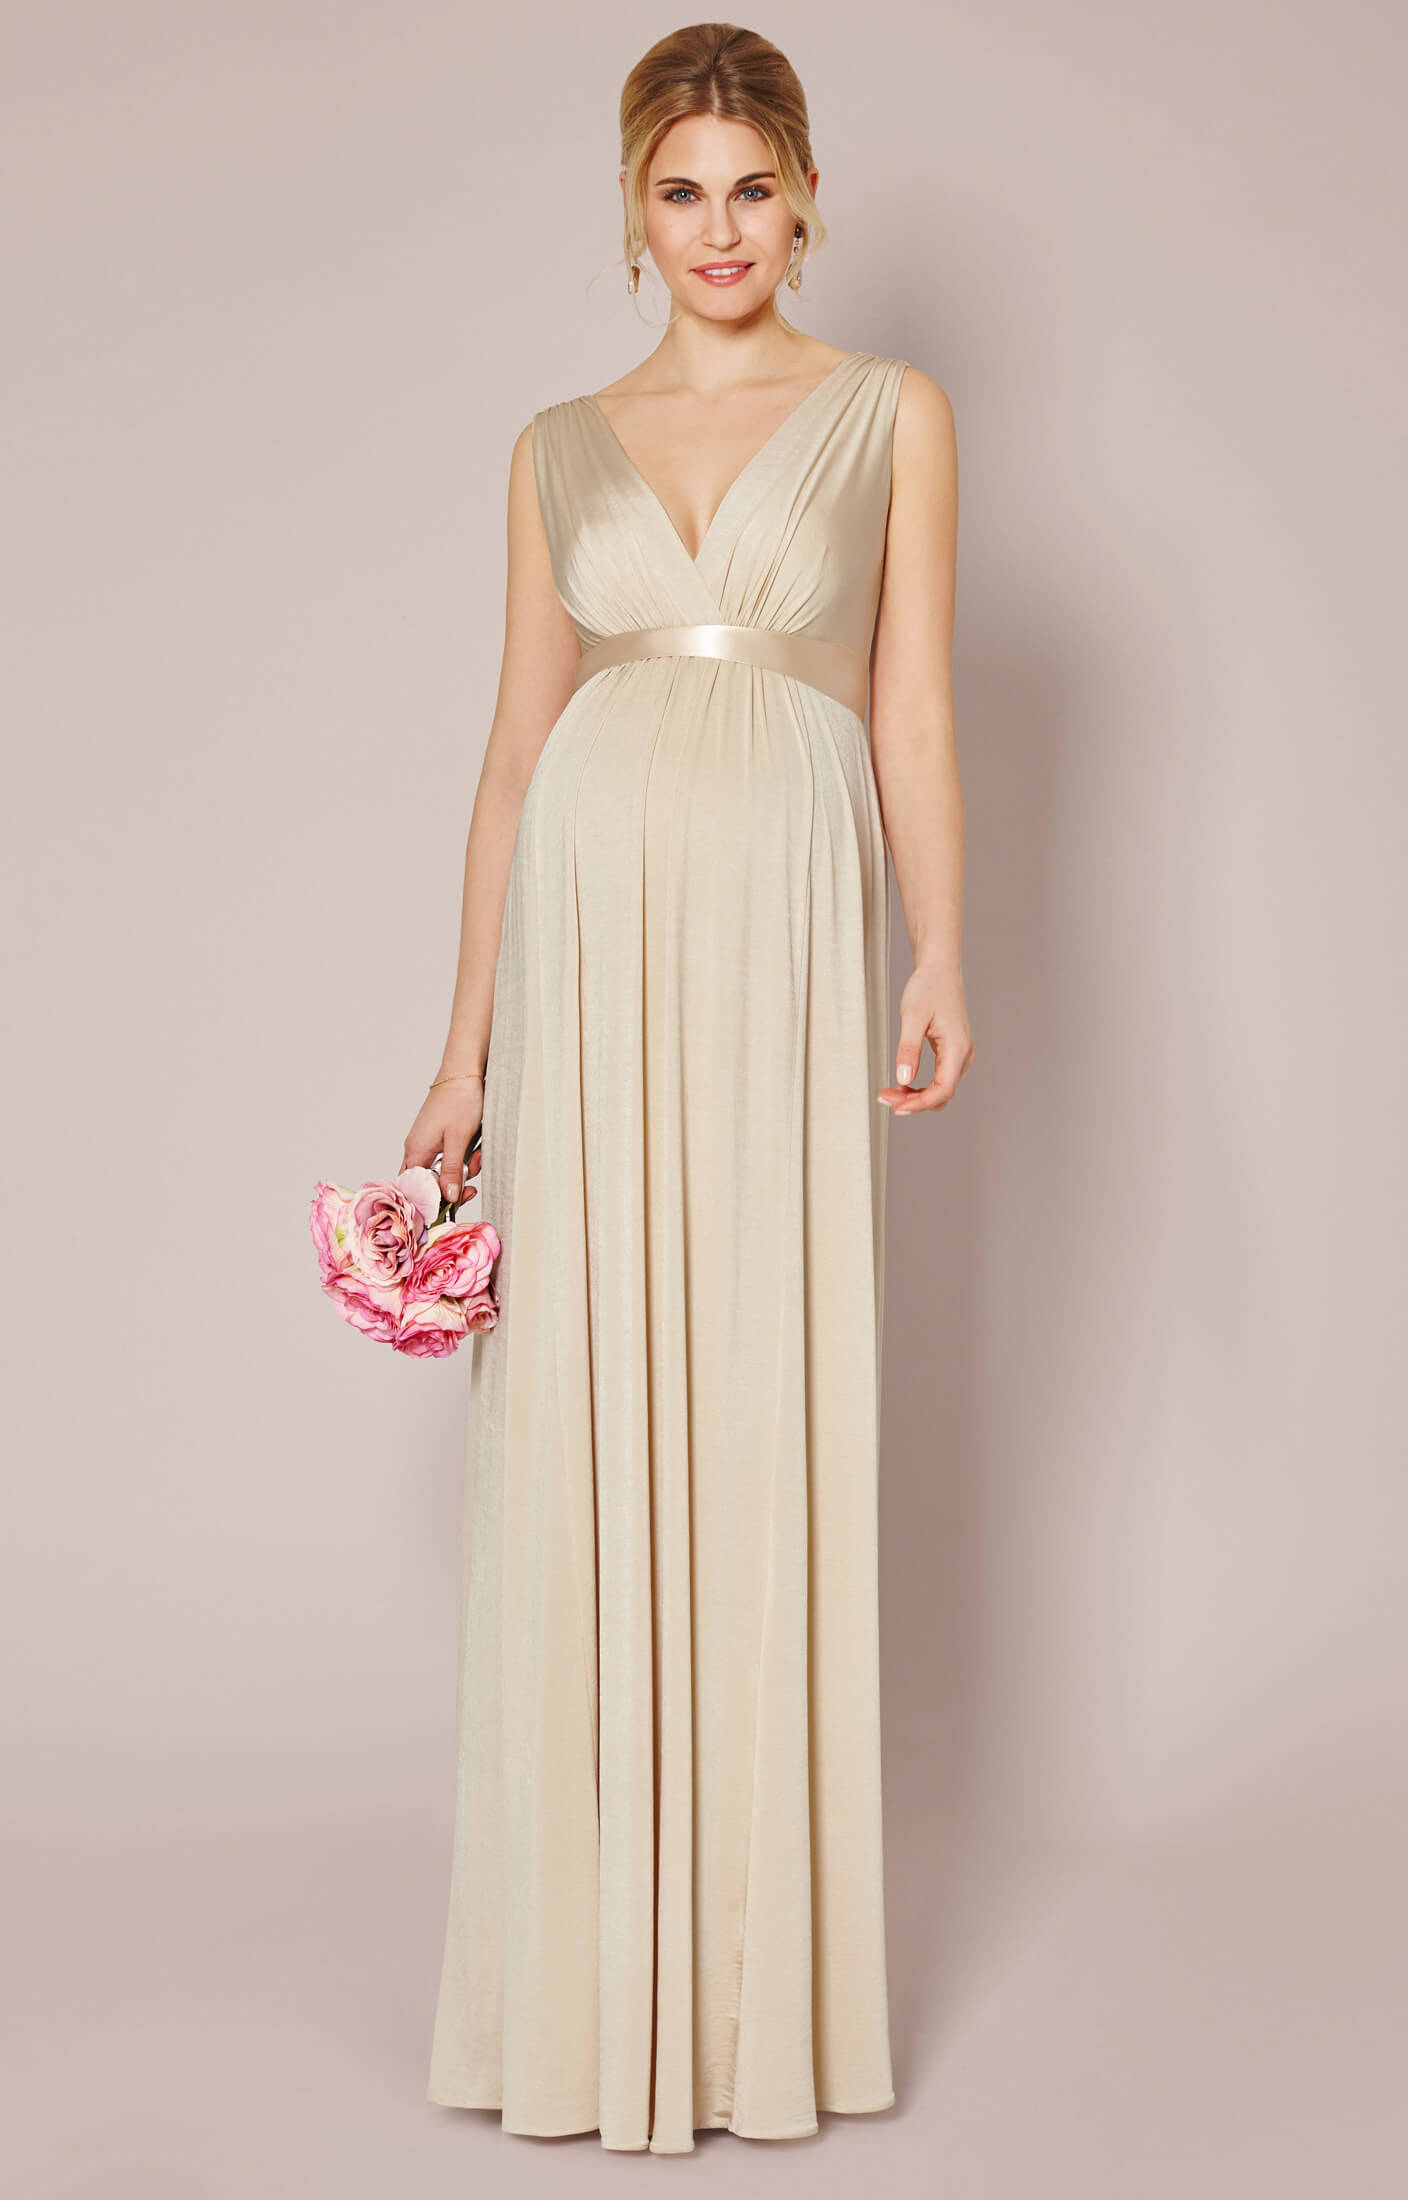 Maternity Dresses For Christmas Party